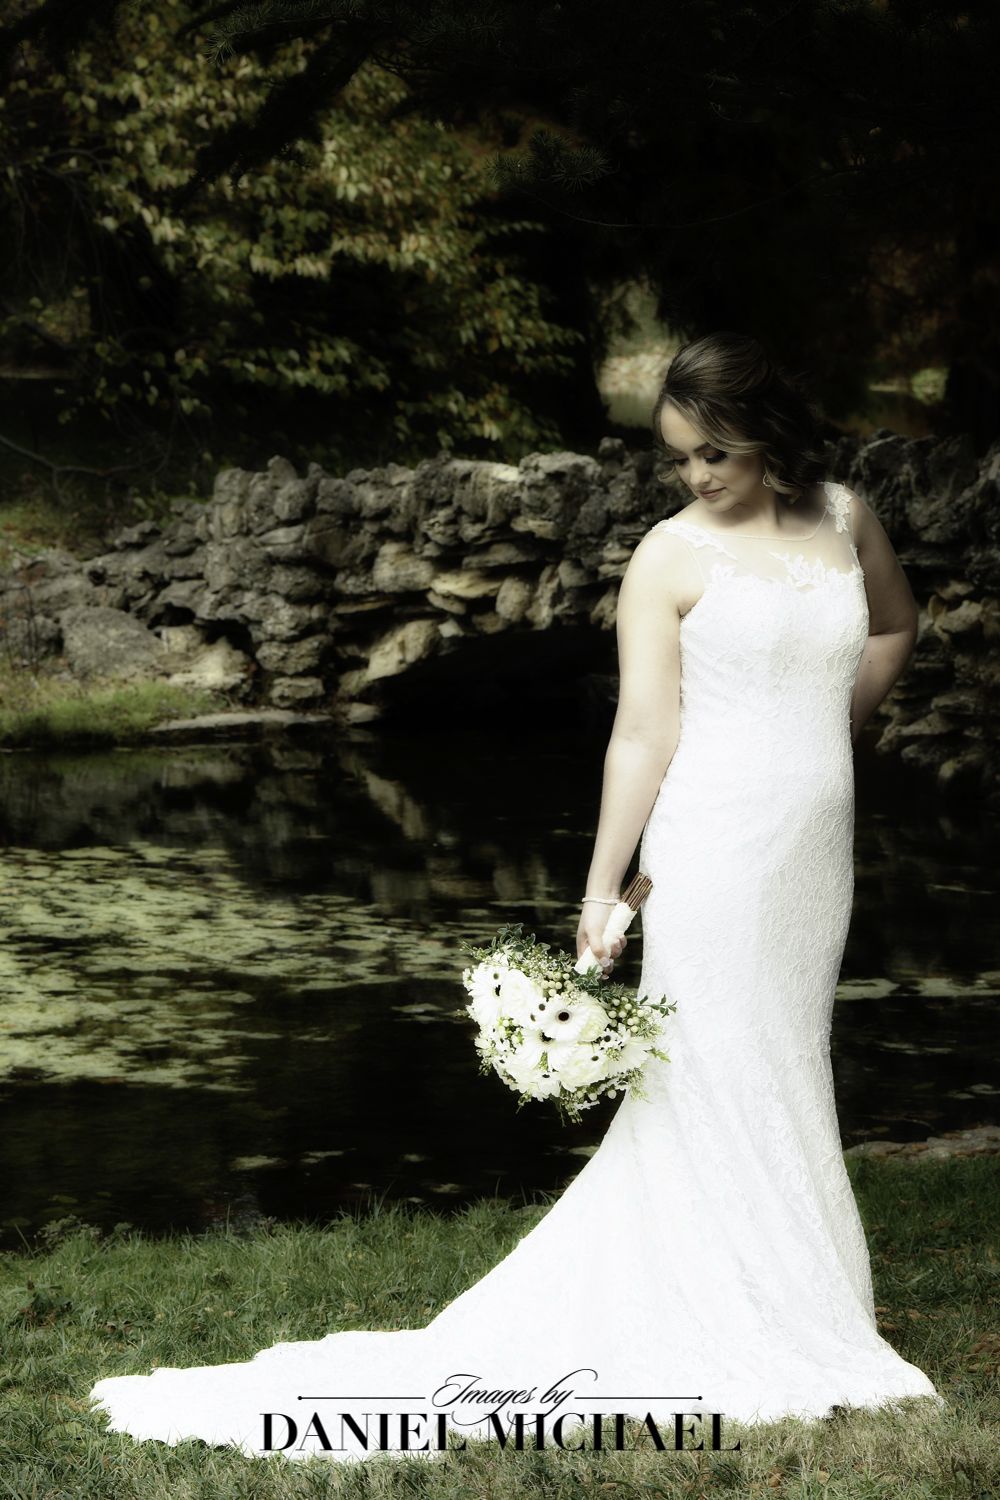 BoChic Bridal Wedding Dress Photographer